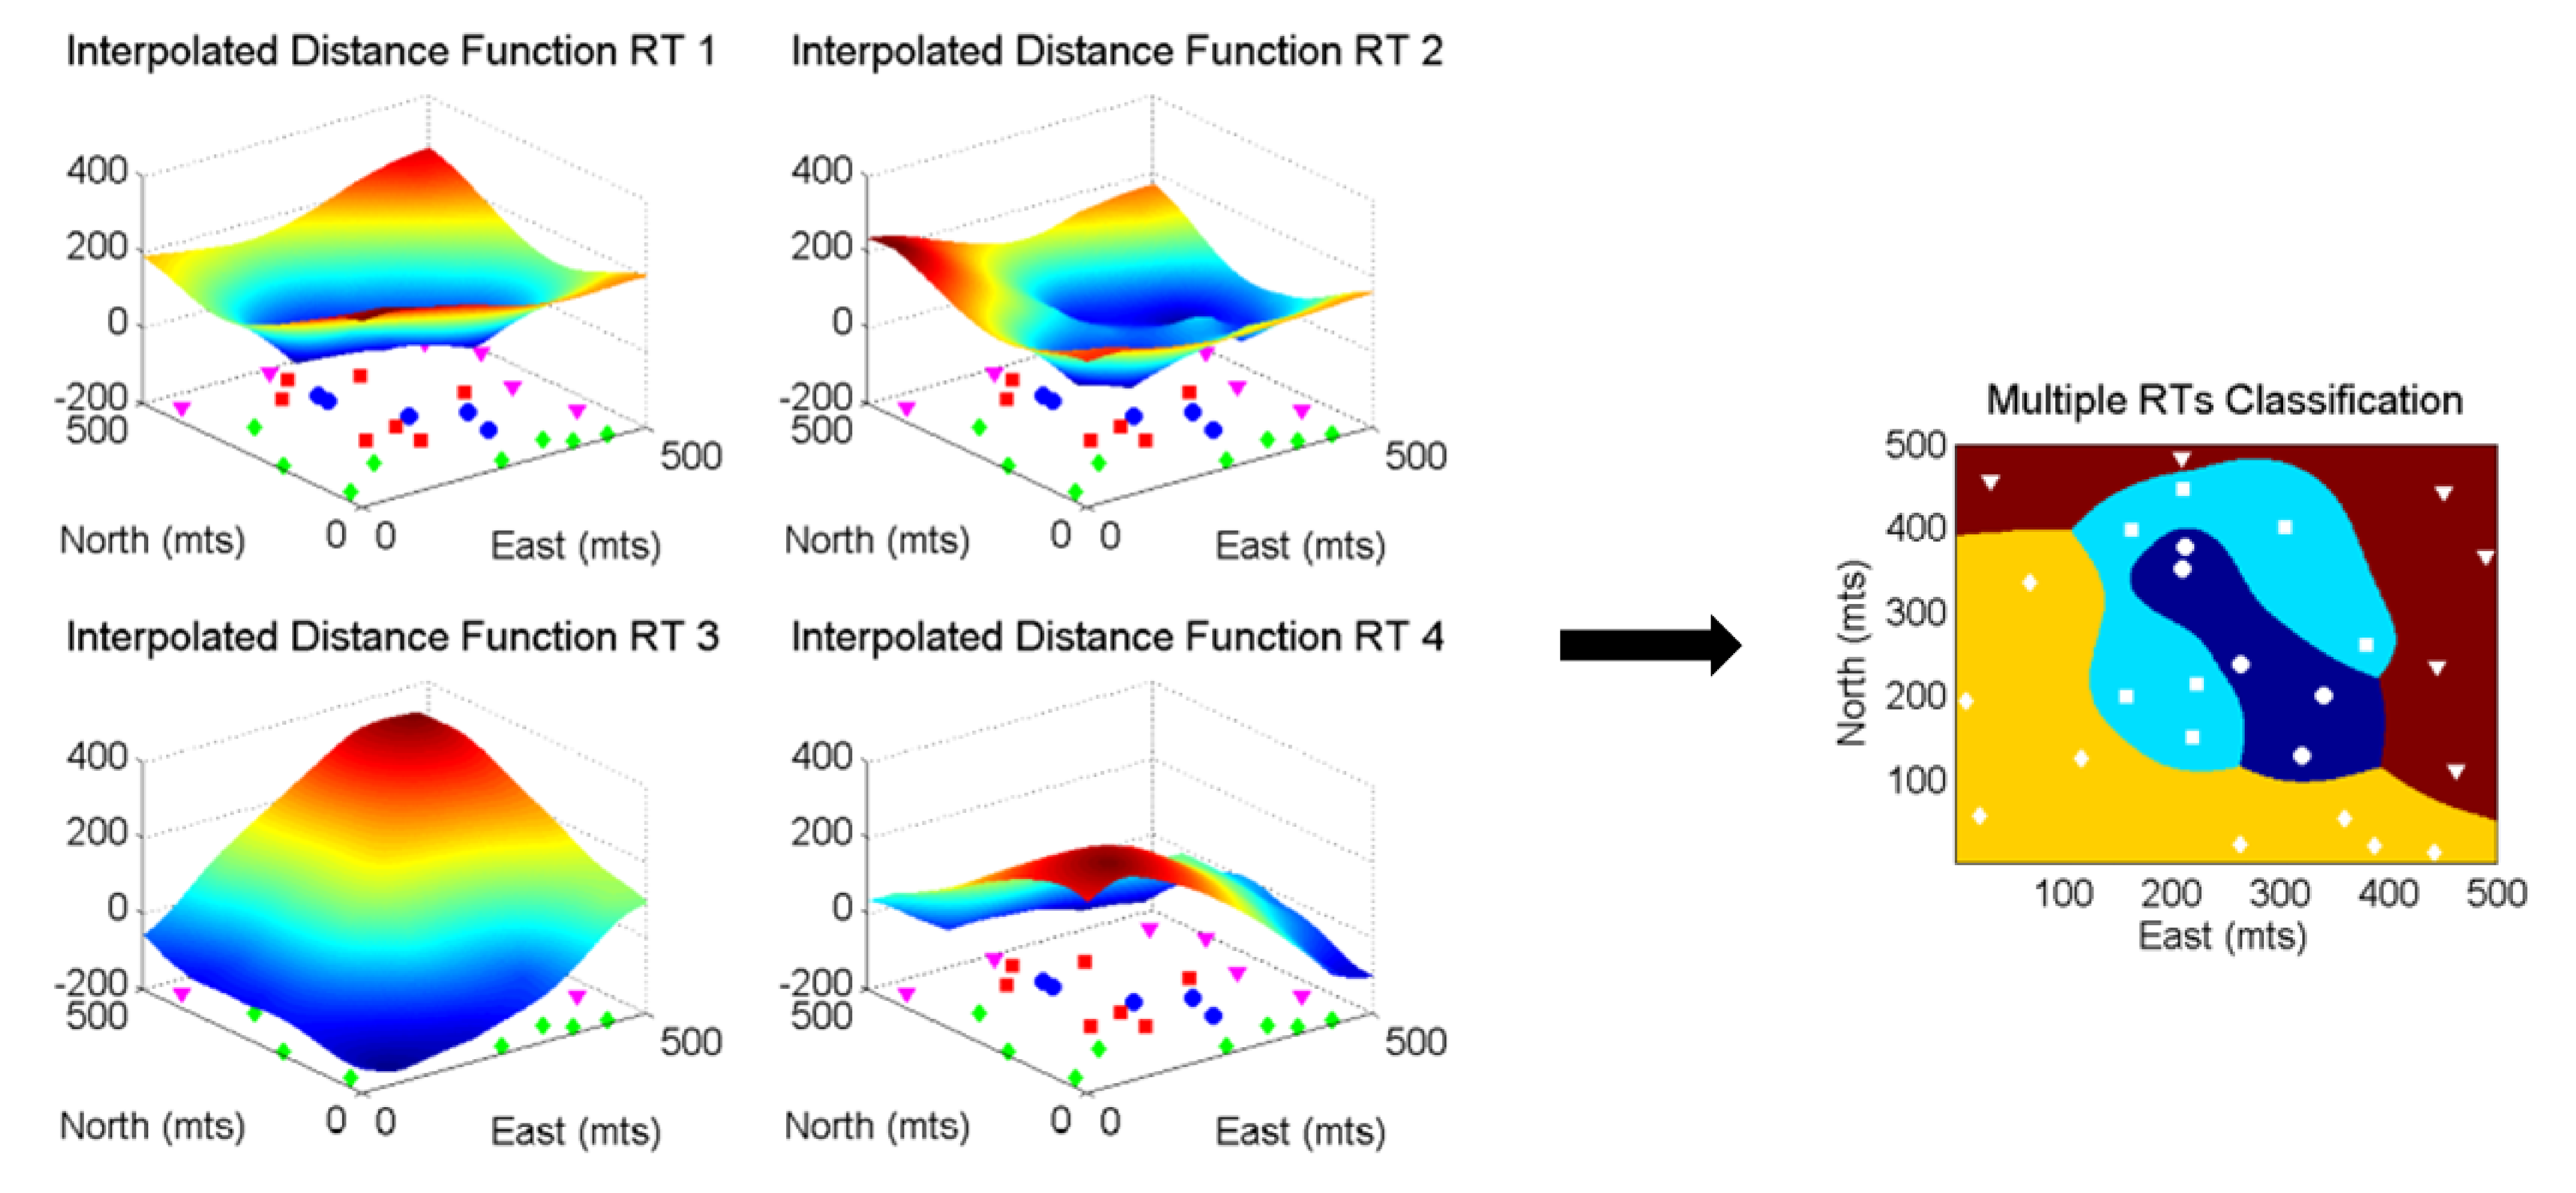 Classification of multiple rock types based on the minimum signed distance estimate. On the left, projections of the estimated signed distance for each category; on the right, the final classification.